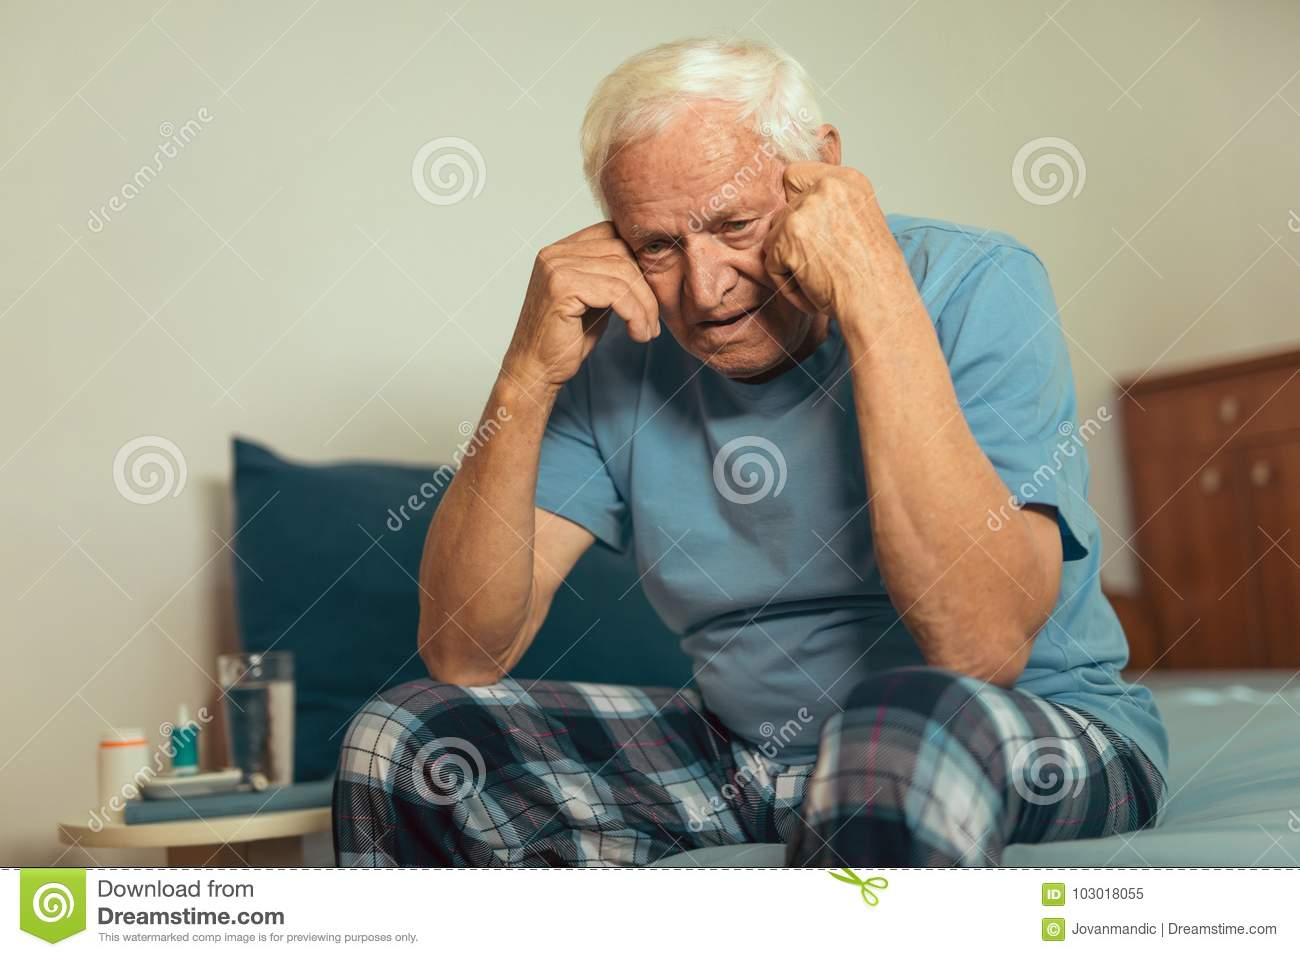 Senior Man Sitting On Bed Suffering From Depression